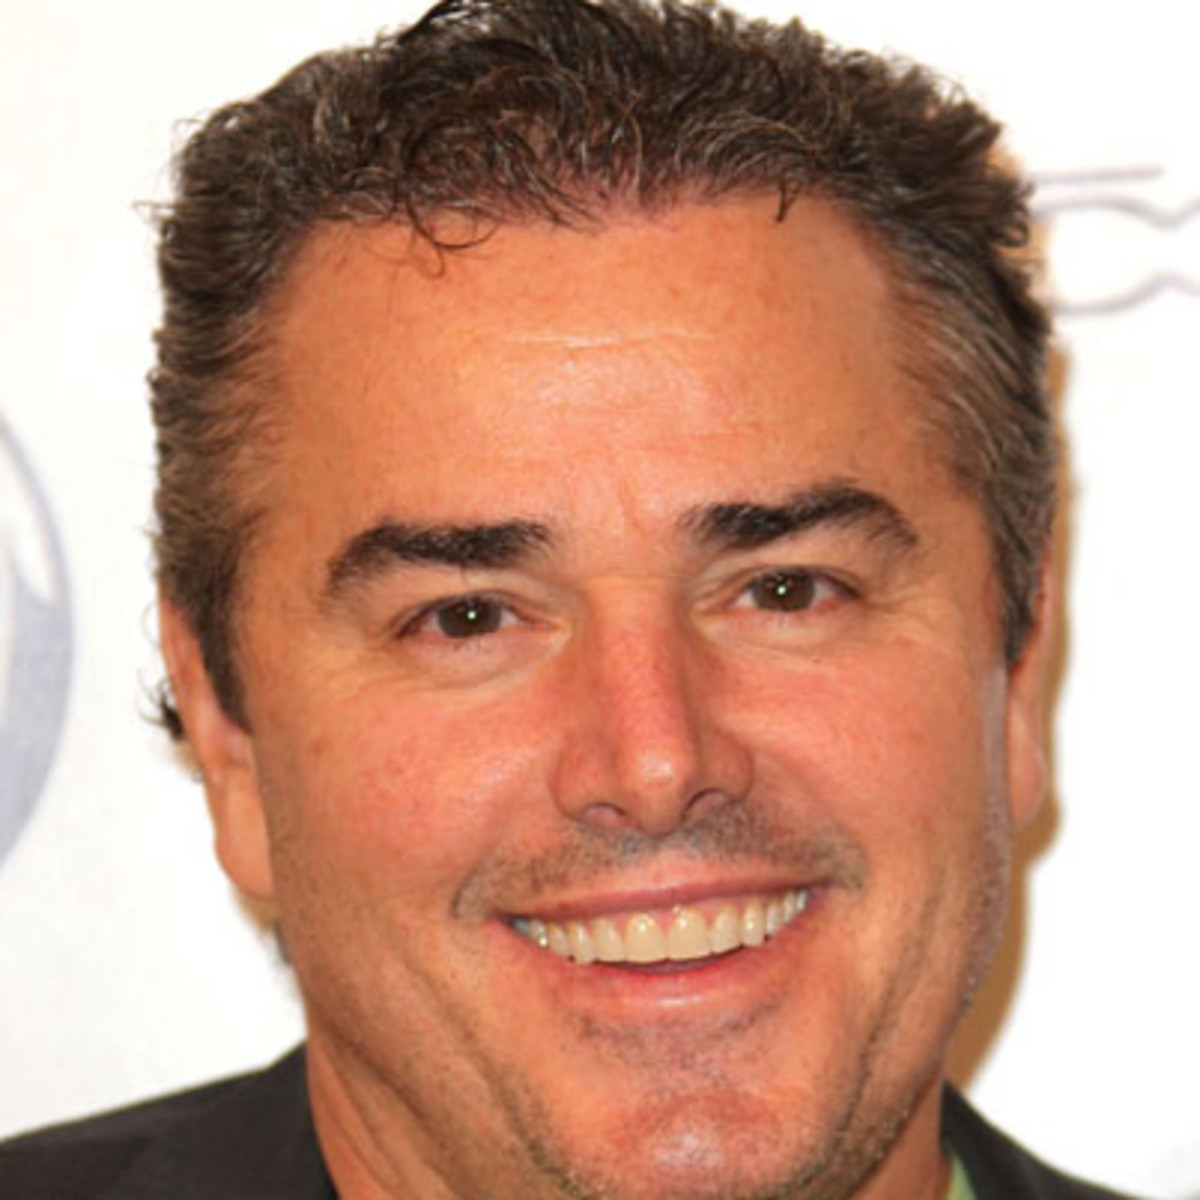 christopher knight's dad